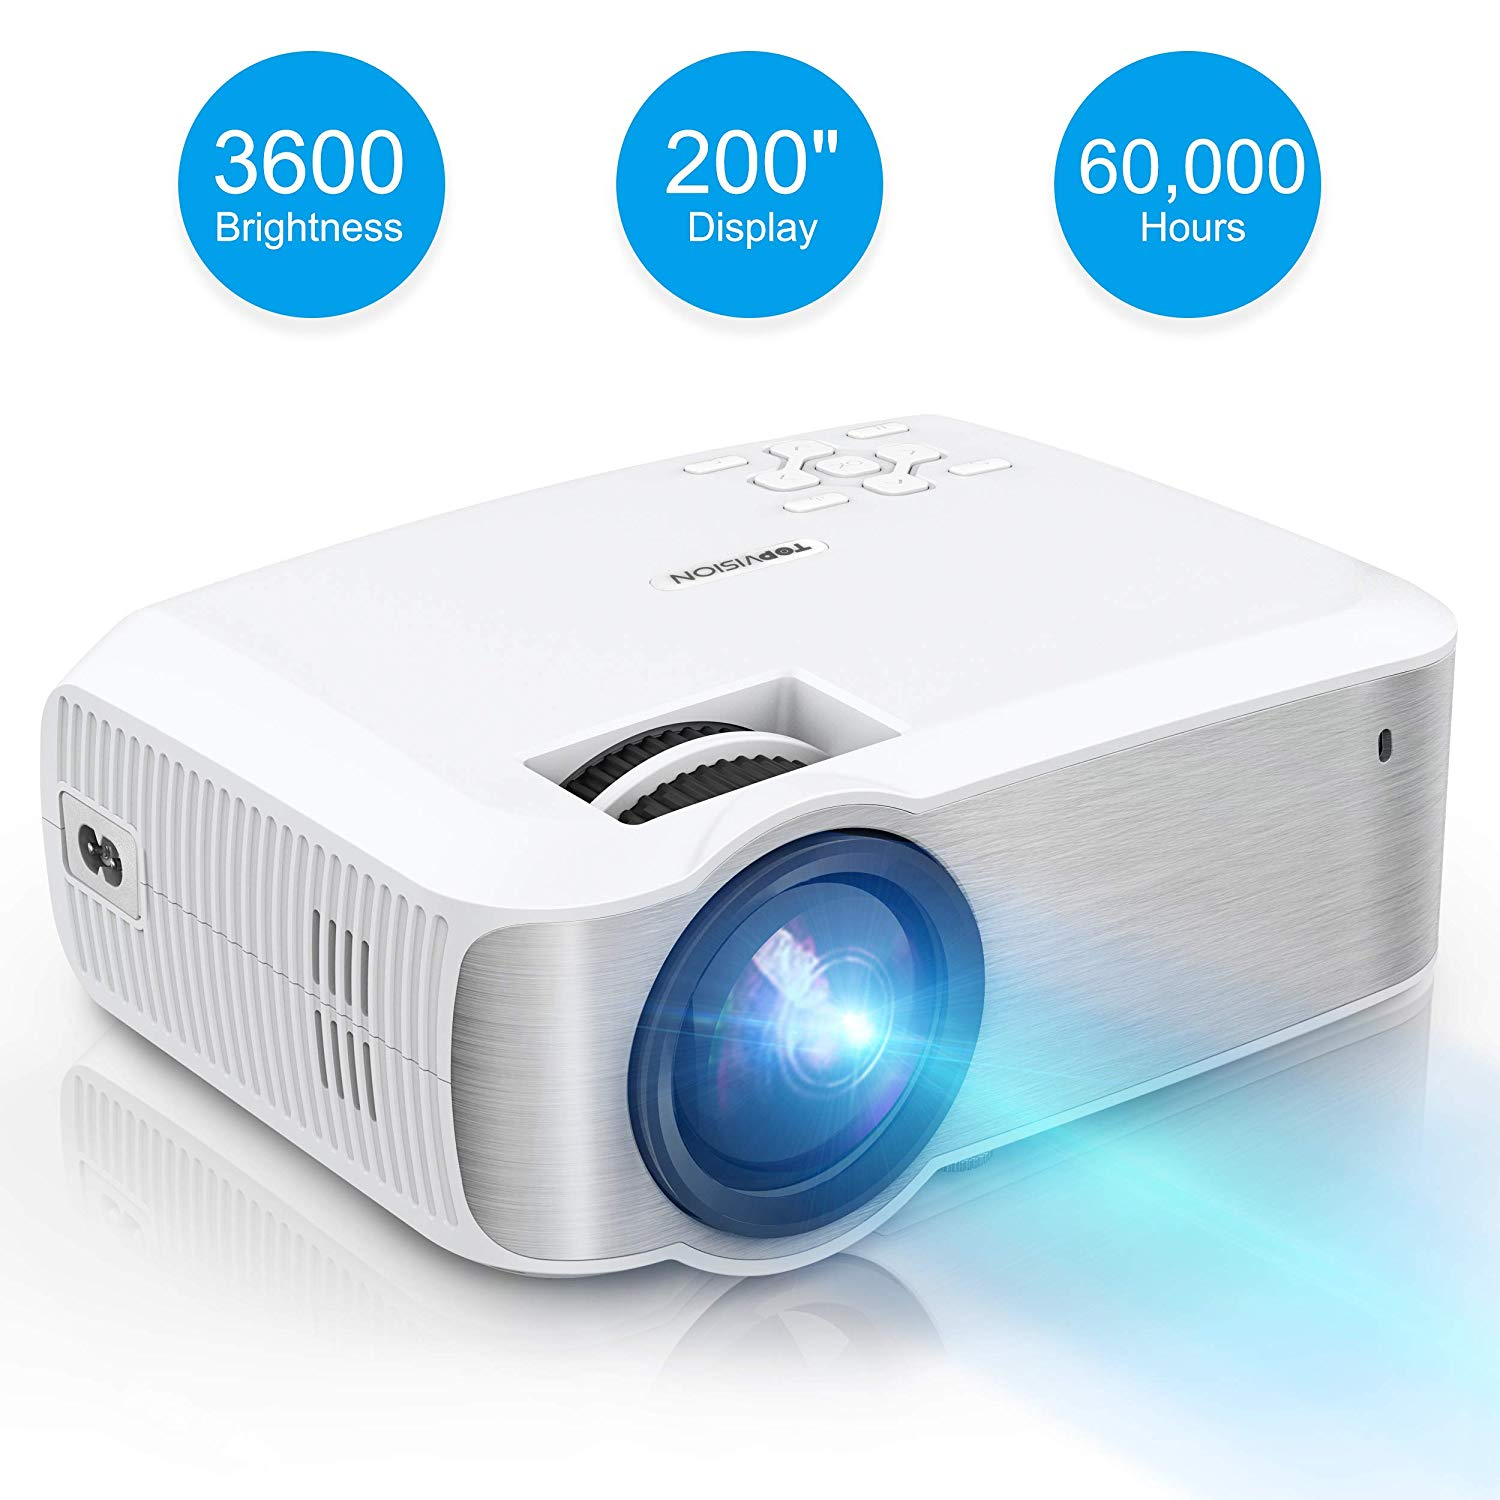 TOPVISION Full HD LED Projector: - 1080P projectors